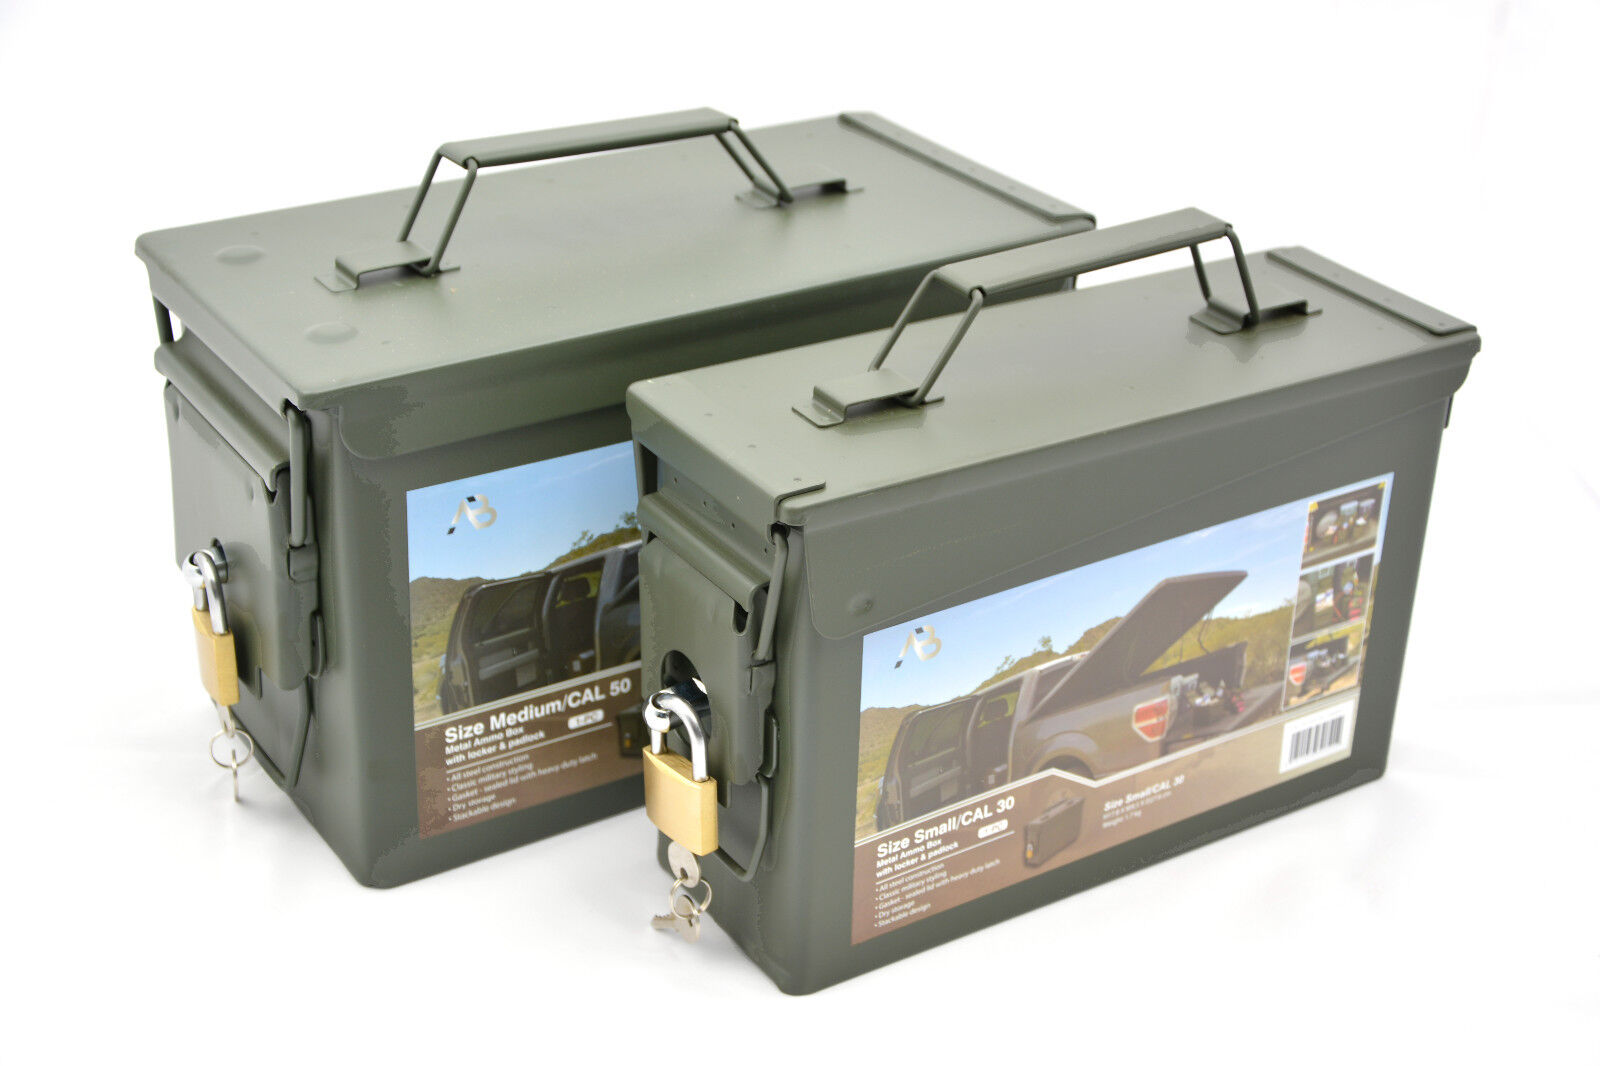 Us Ammunition Box Transport  Box Tool Chest Transport Box Box Olive  comfortably